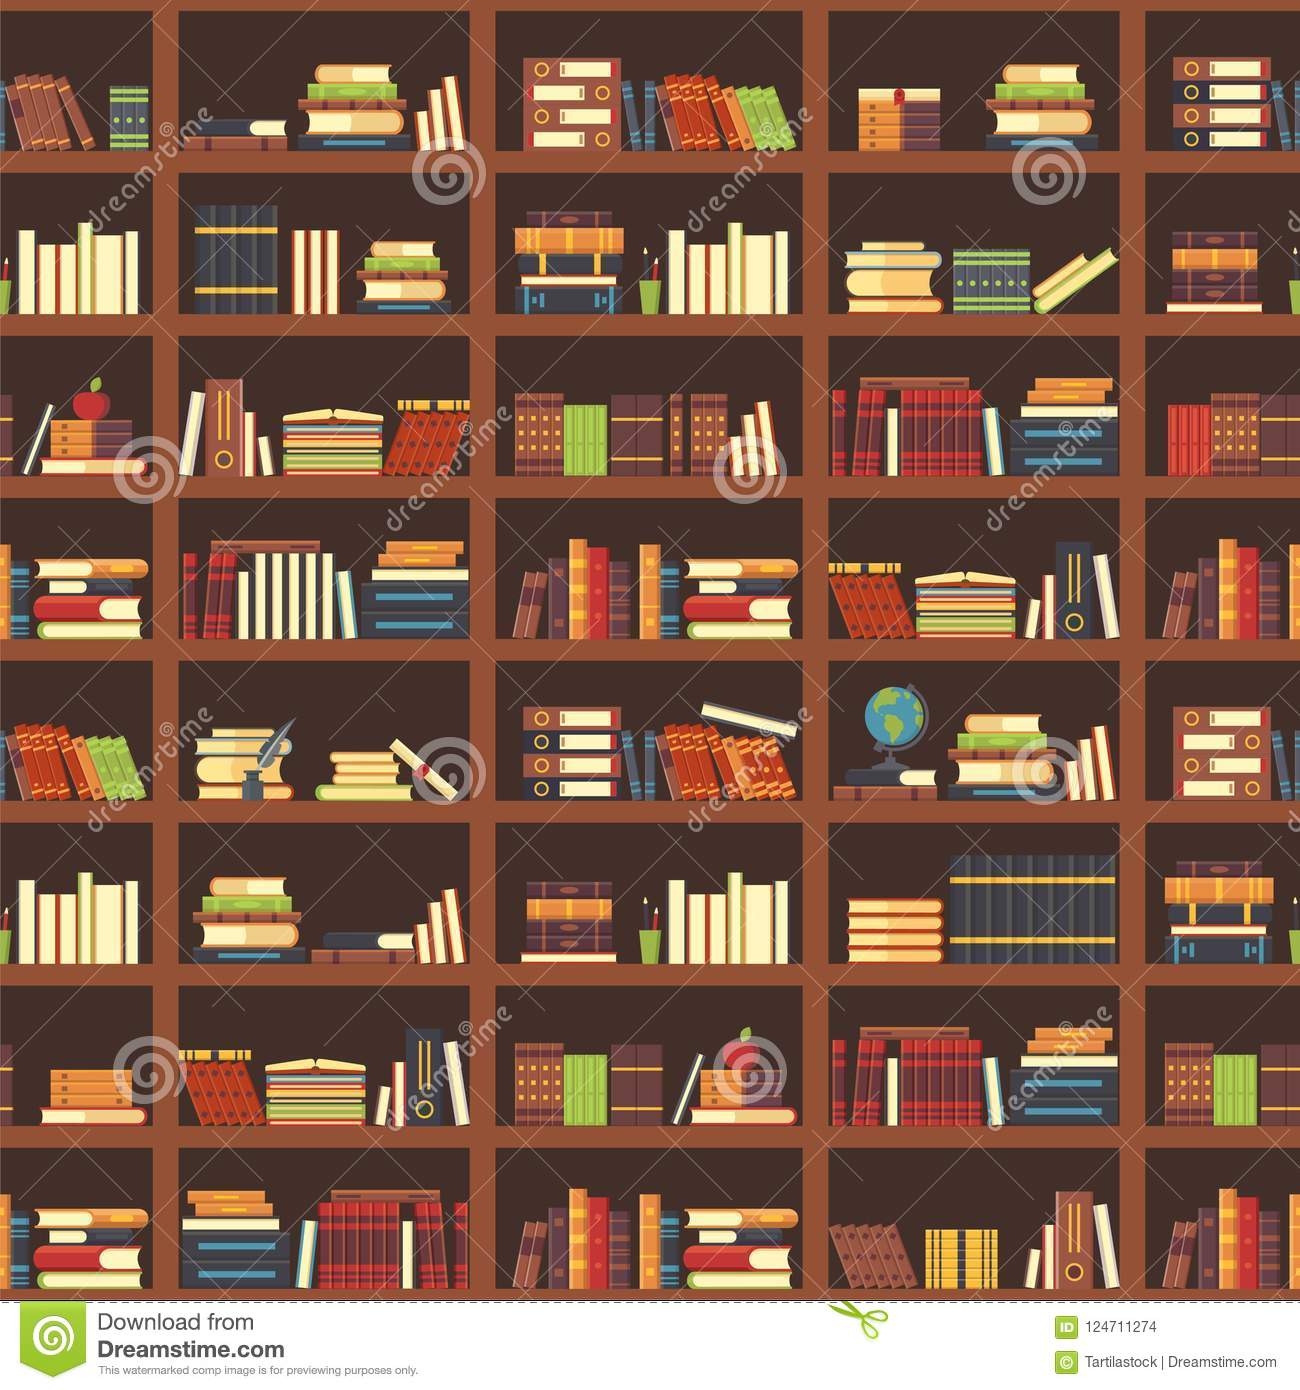 Books In Bookcase Seamless Pattern School Book Science Literature Textbook Dictionary And Magazines Stack At University Old Library Bookshelf College